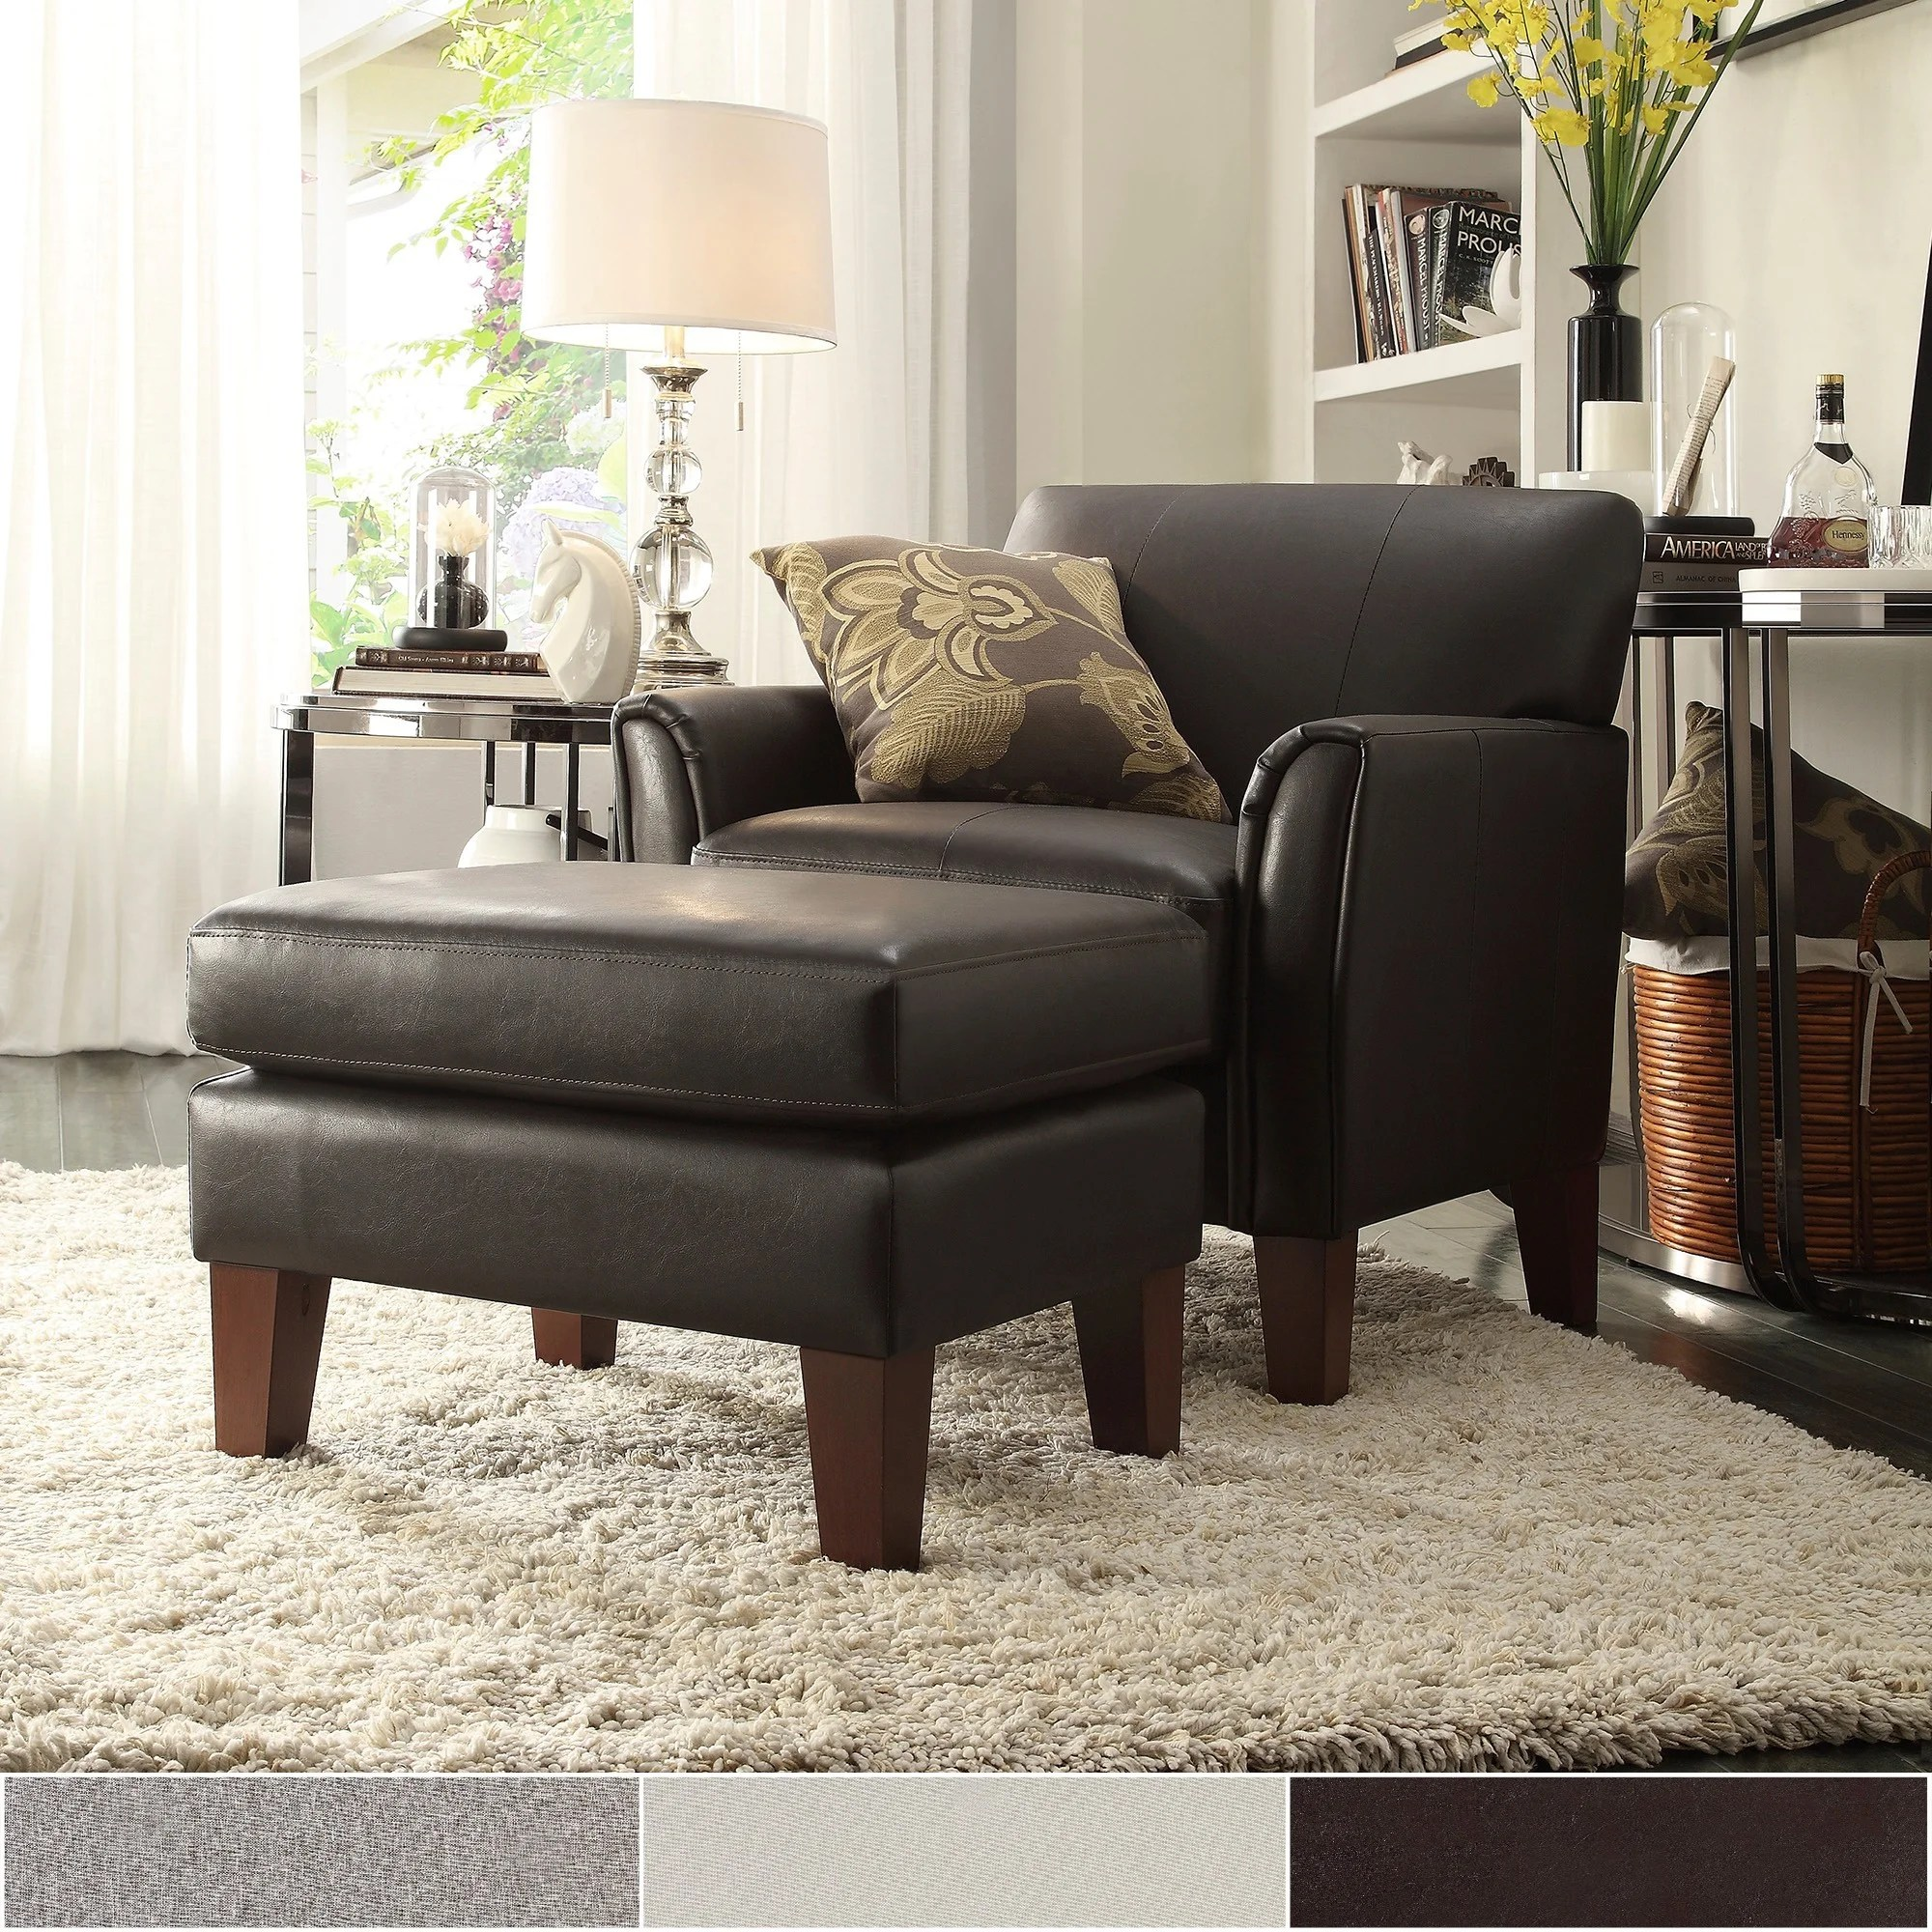 Oversized Reading Chair With Ottoman Buy Chair Ottoman Sets Living Room Chairs Online At Overstock